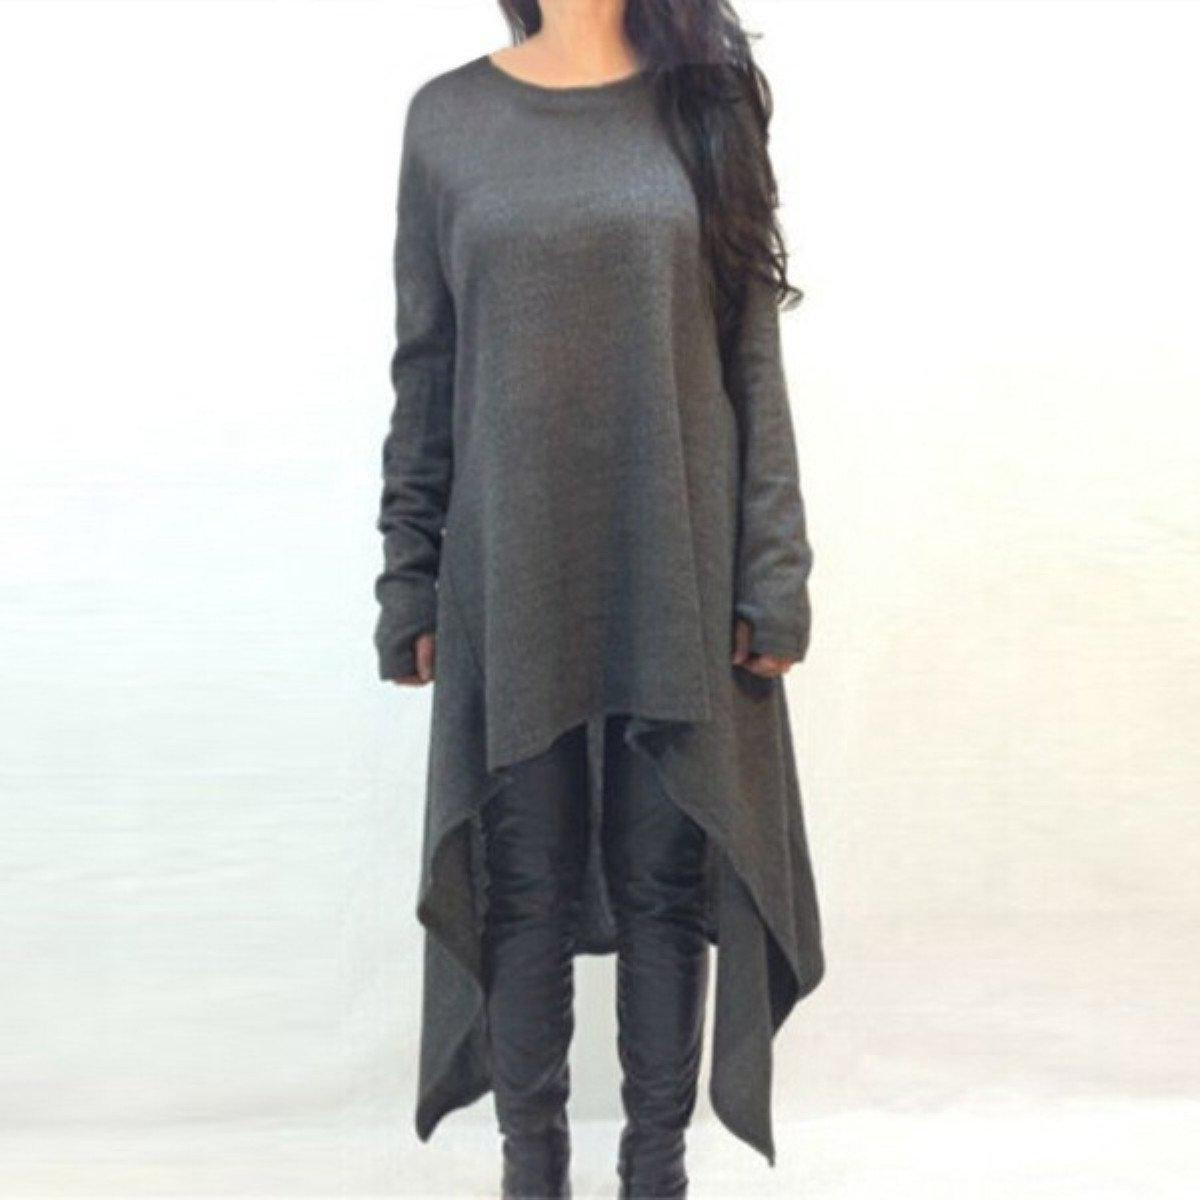 Irregular Loose Casual O-neck Long Sleeve Knitted Long Maxi Sweater Dress-Dress-SheSimplyShops